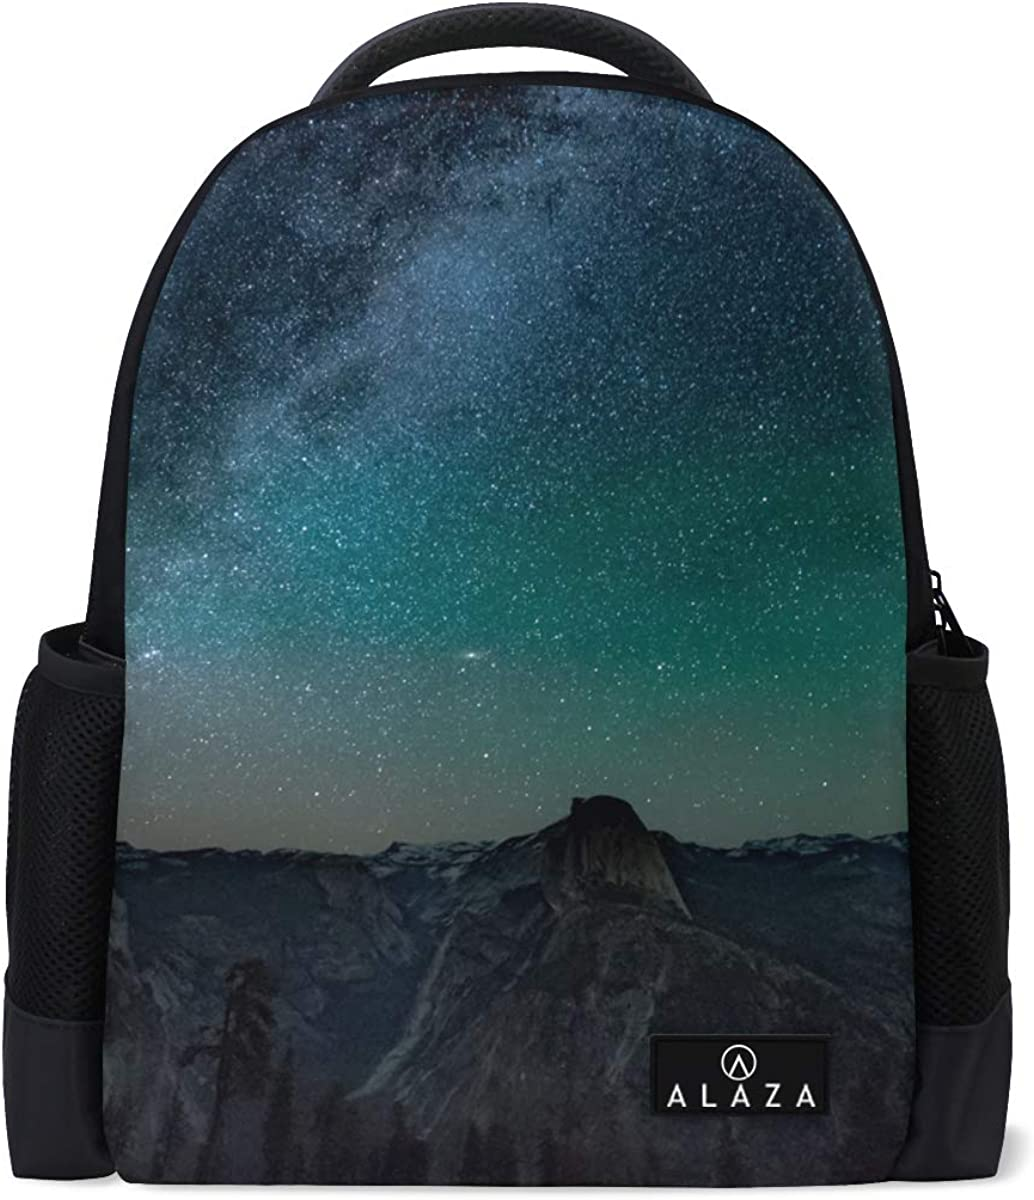 Backpack Field Pack Travel Bag Laptop Bag Fashion Quiet Night Sky